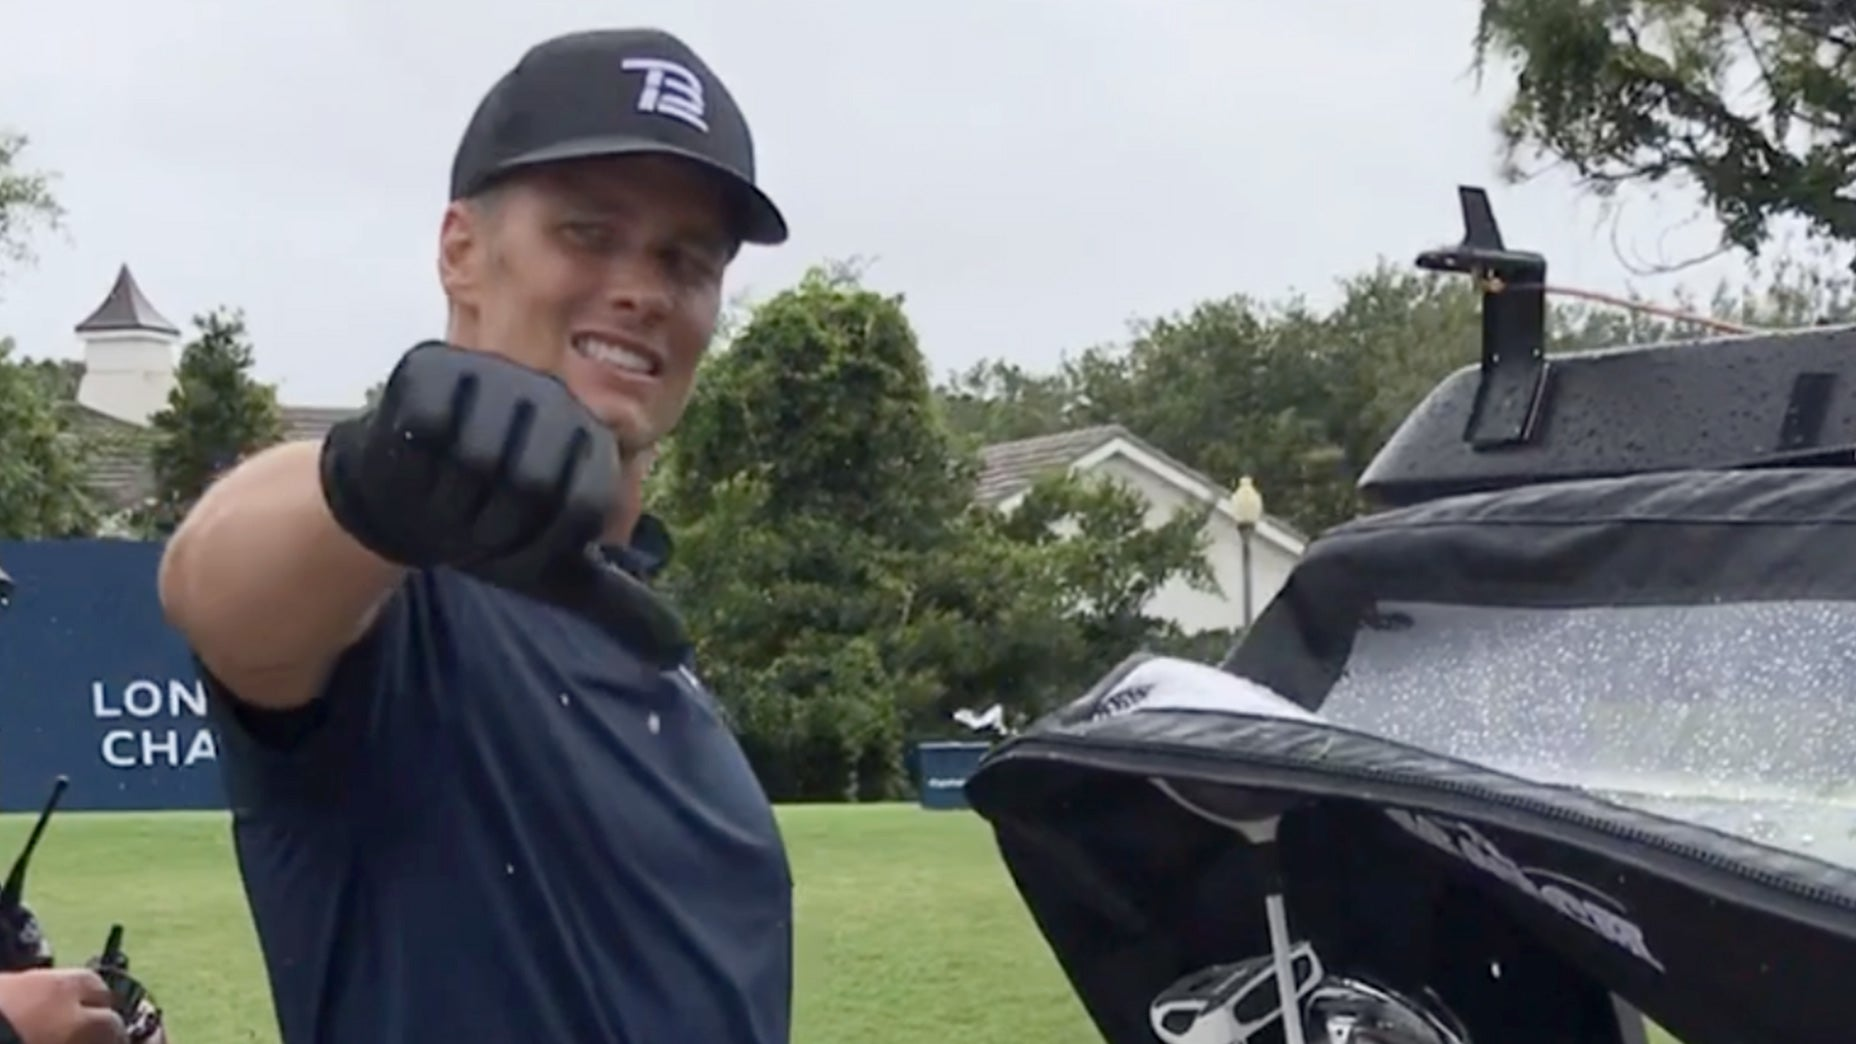 Tom Brady had an up and down day on the golf course.